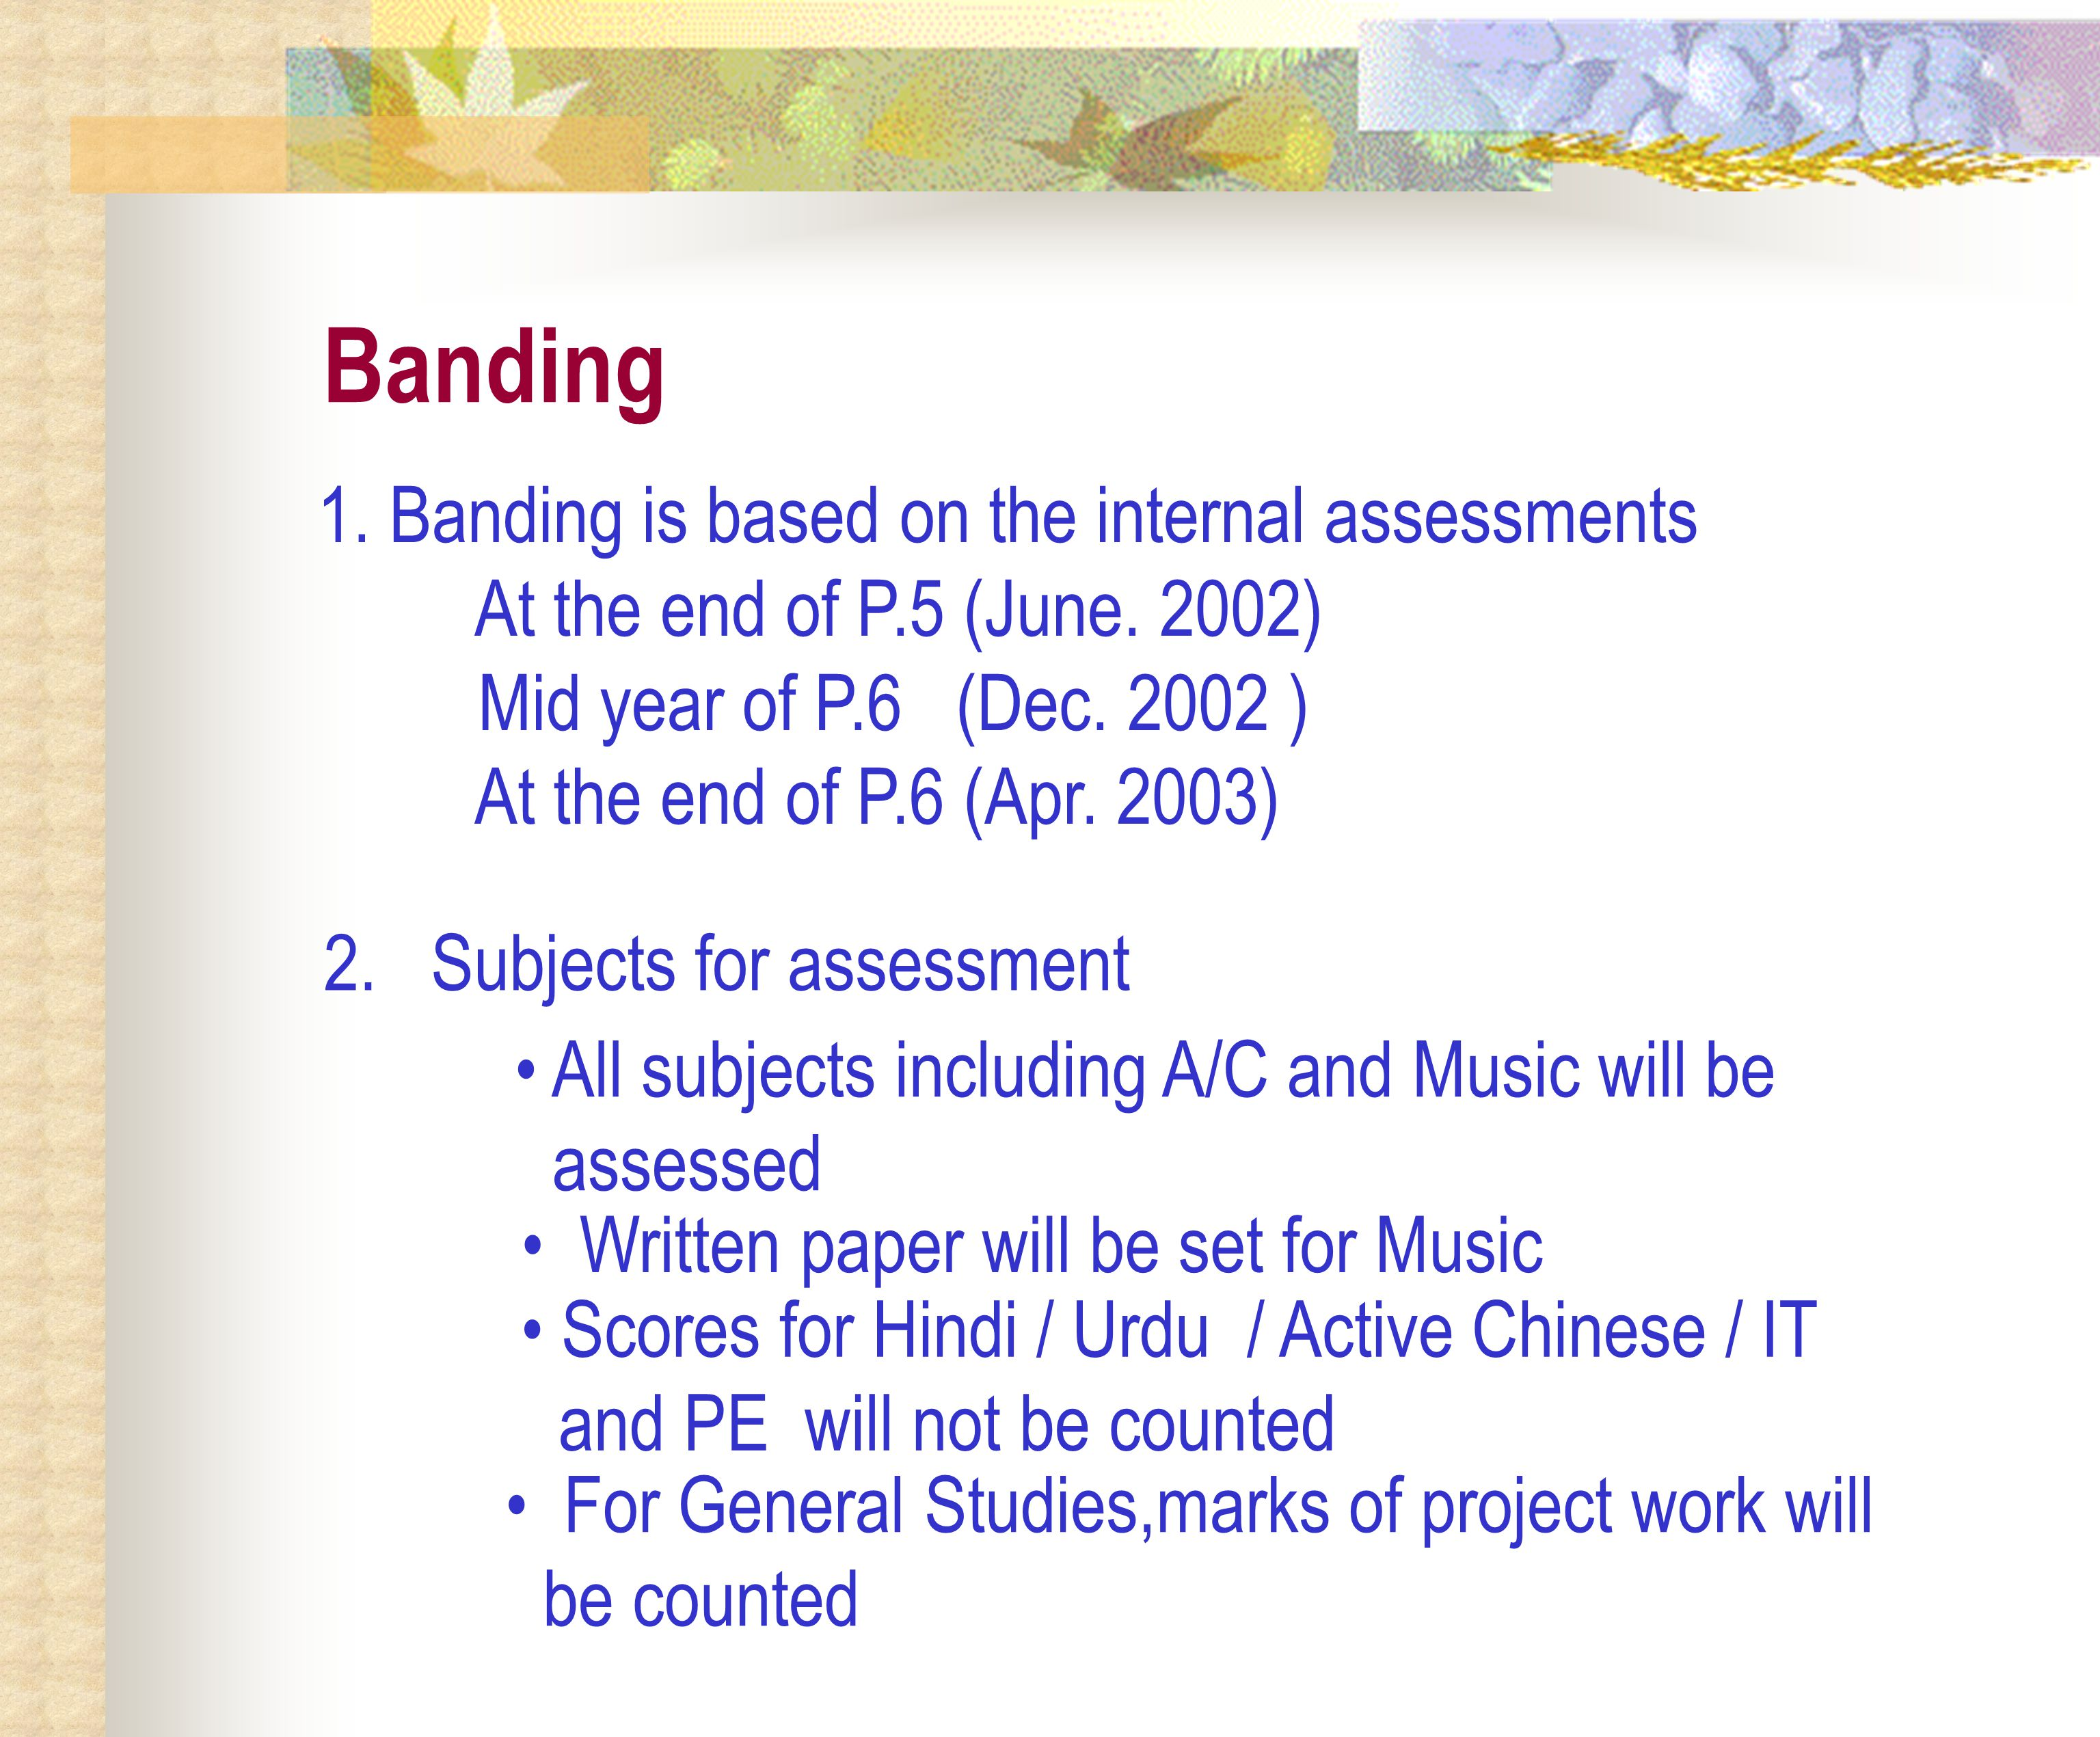 Banding 1. Banding is based on the internal assessments At the end of P.5 (June.